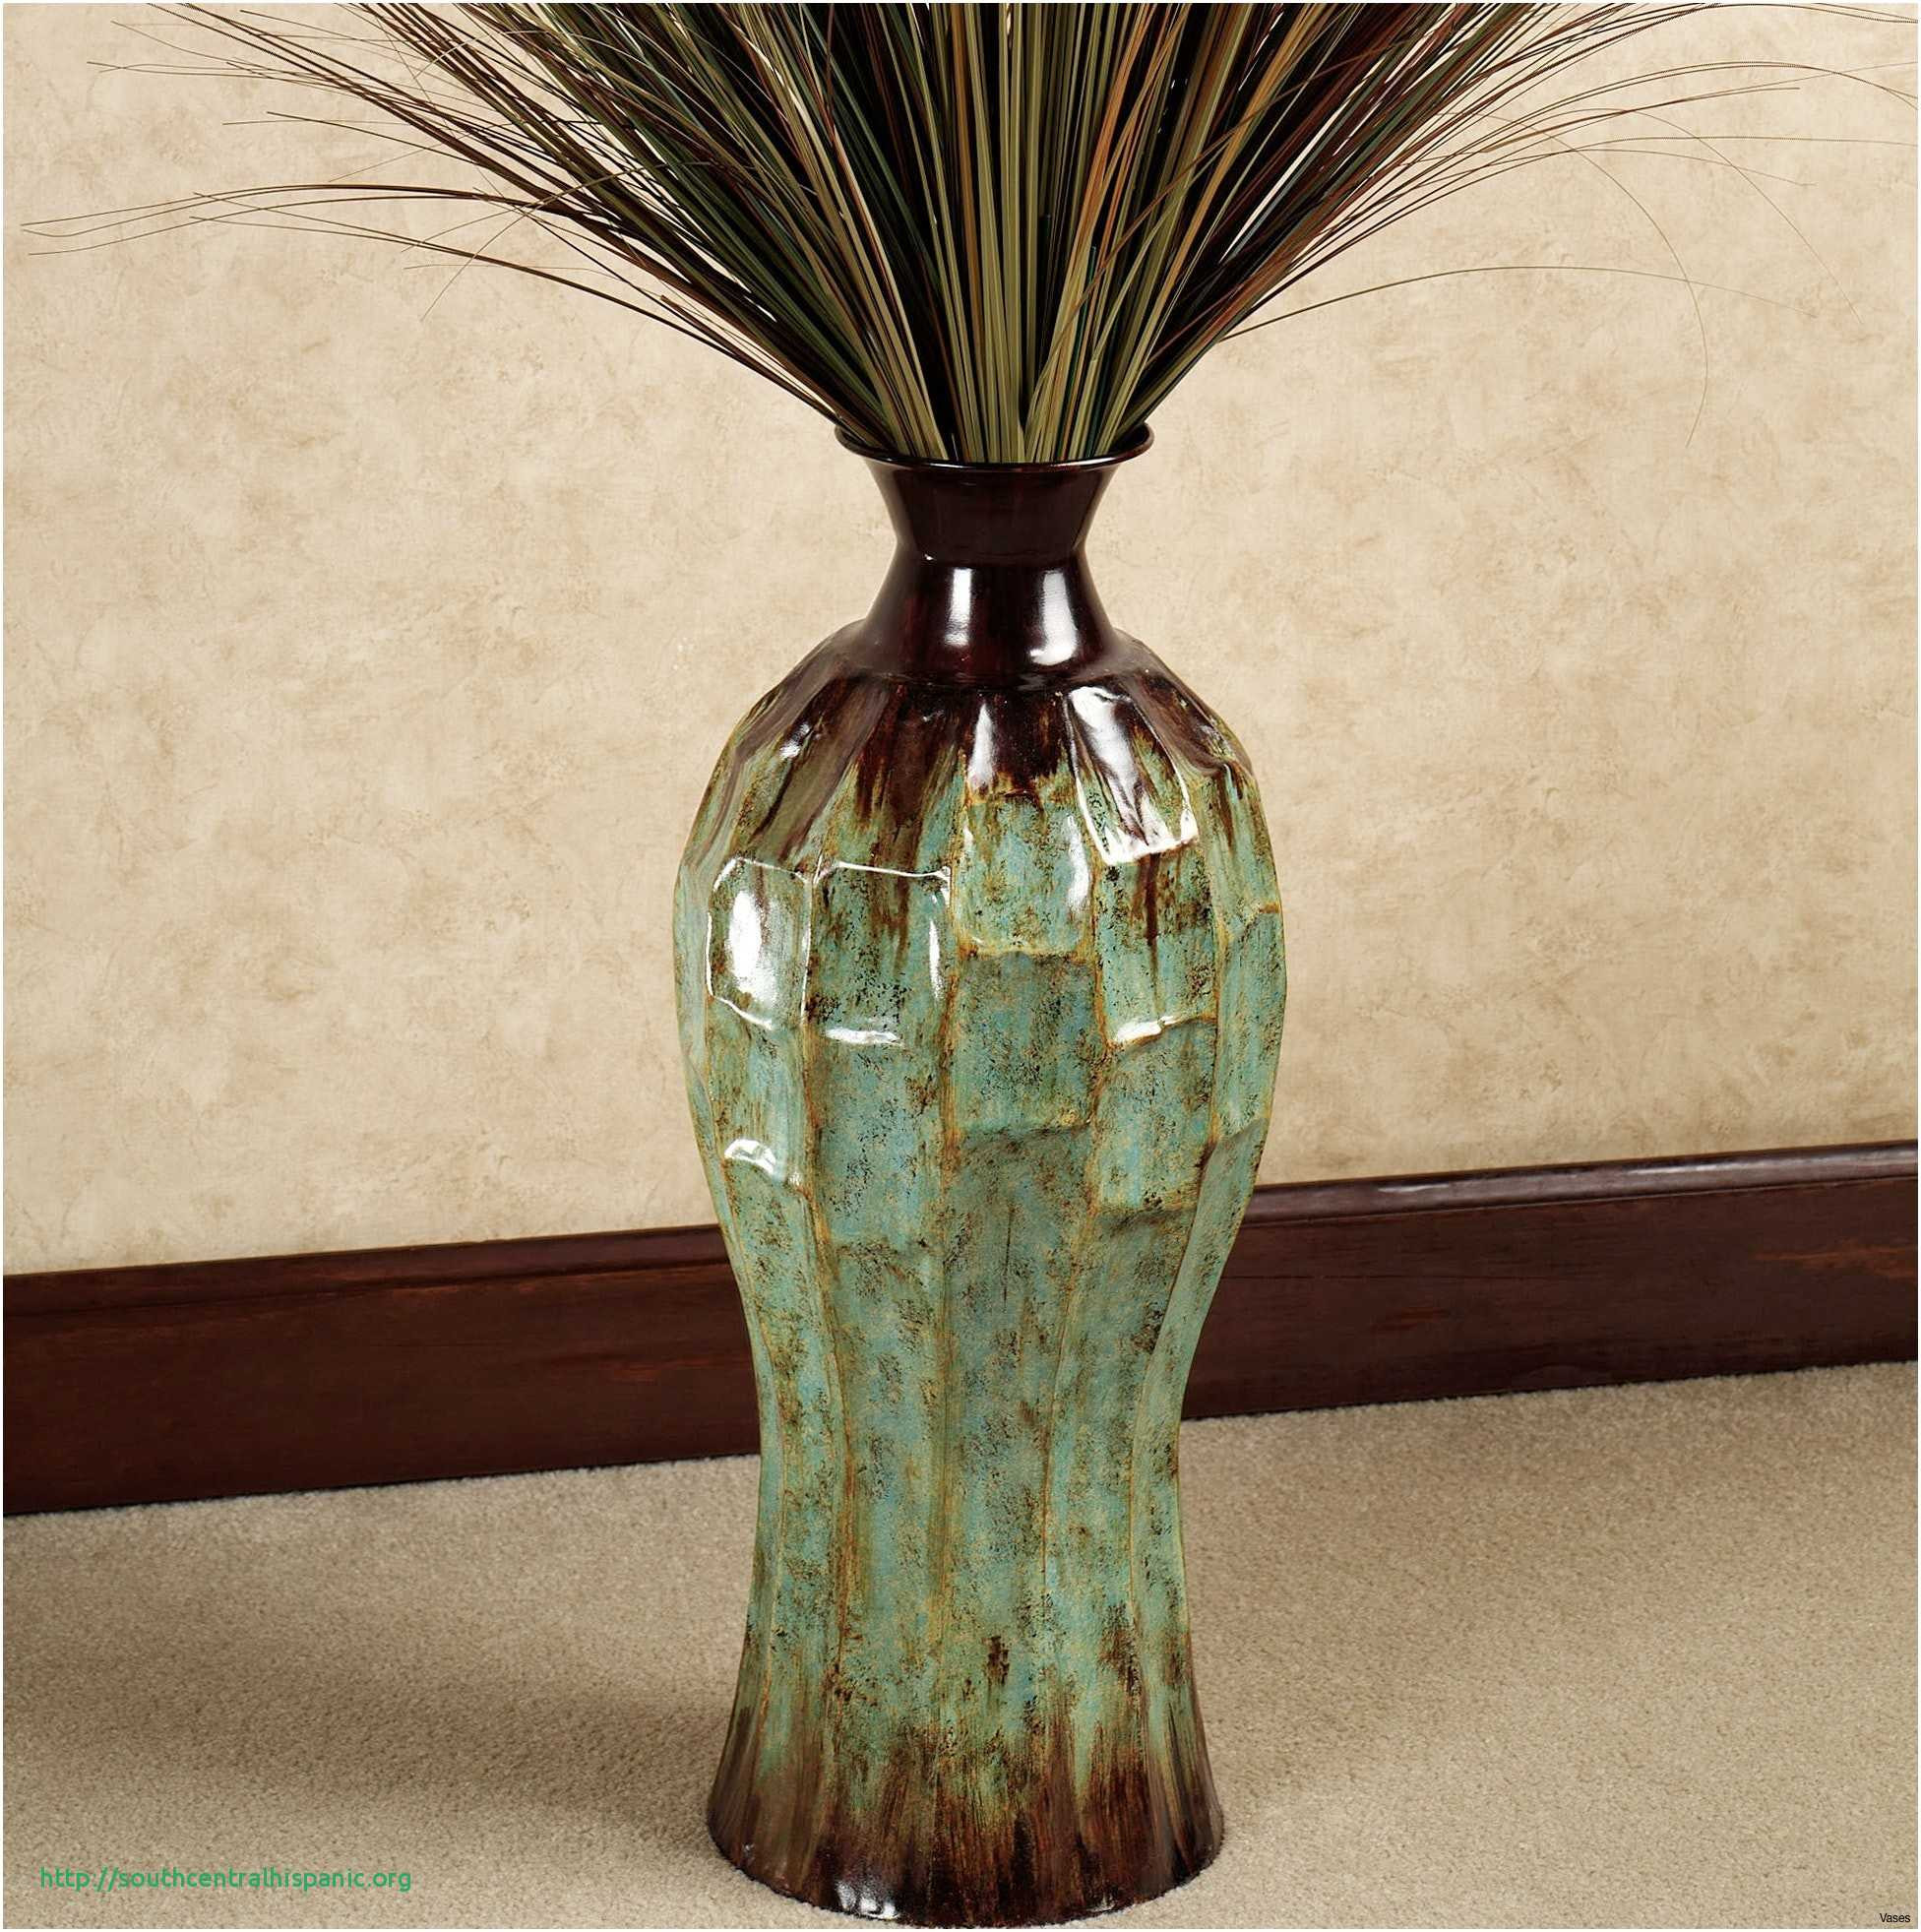 29 Popular Home Decor Large Floor Vases 2021 free download home decor large floor vases of 22 impressionnant what to put in a large floor vase ideas blog throughout what to put in a large floor vase beau home design tall decorative floor vases inspi